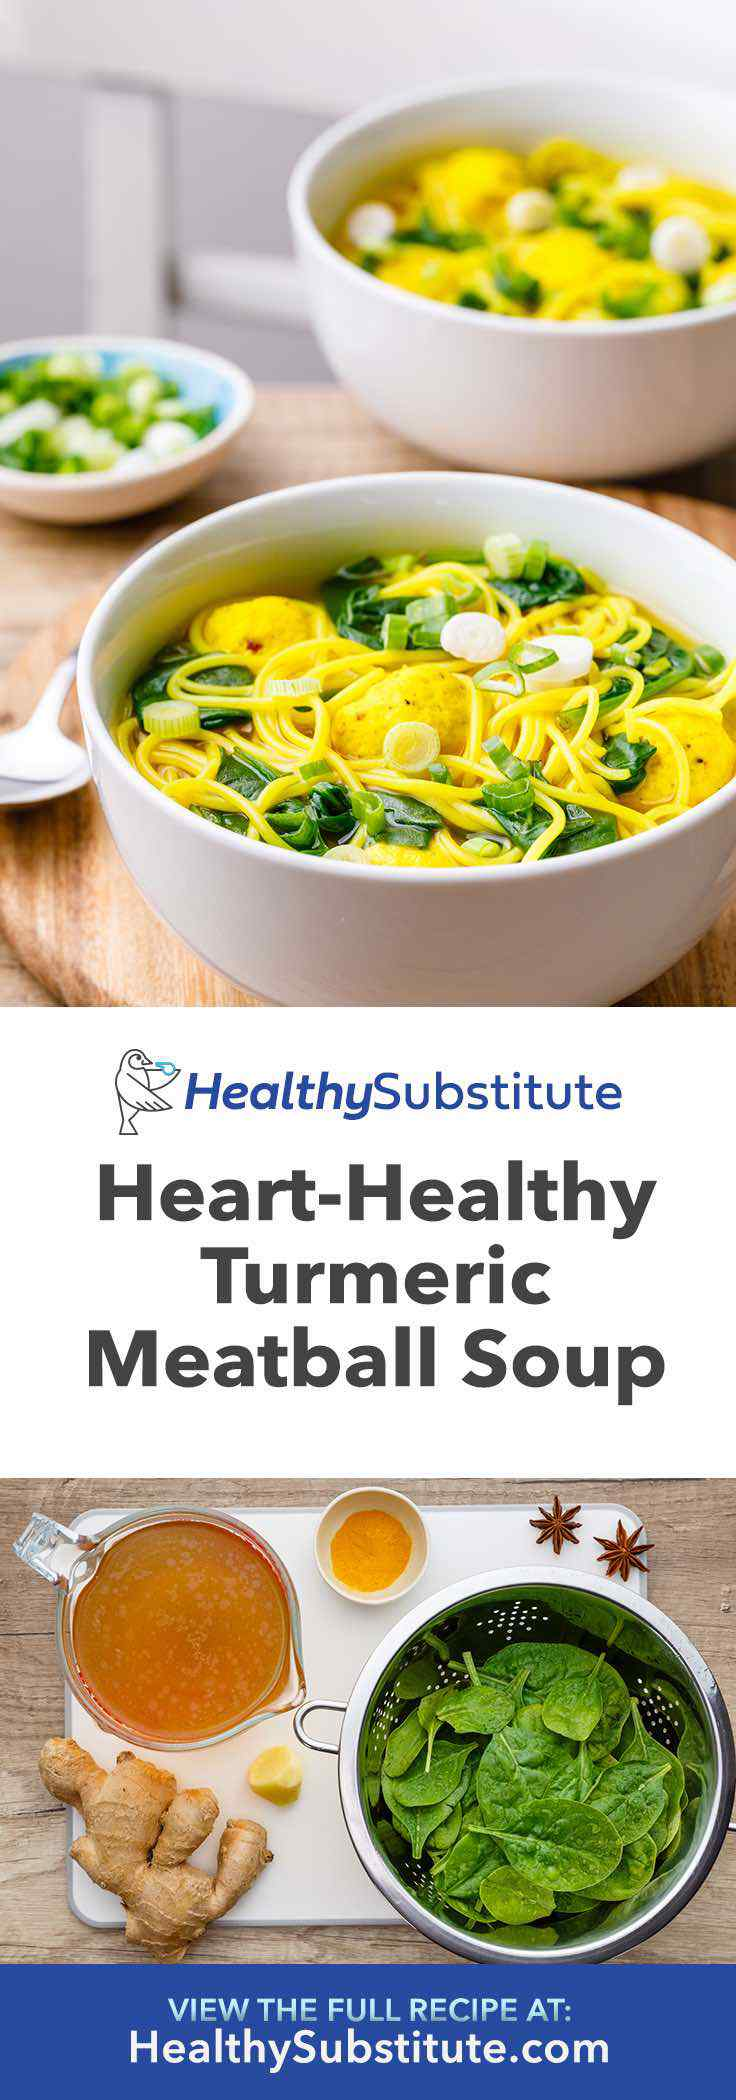 This heart-healthy turmeric meatball soup is so good!